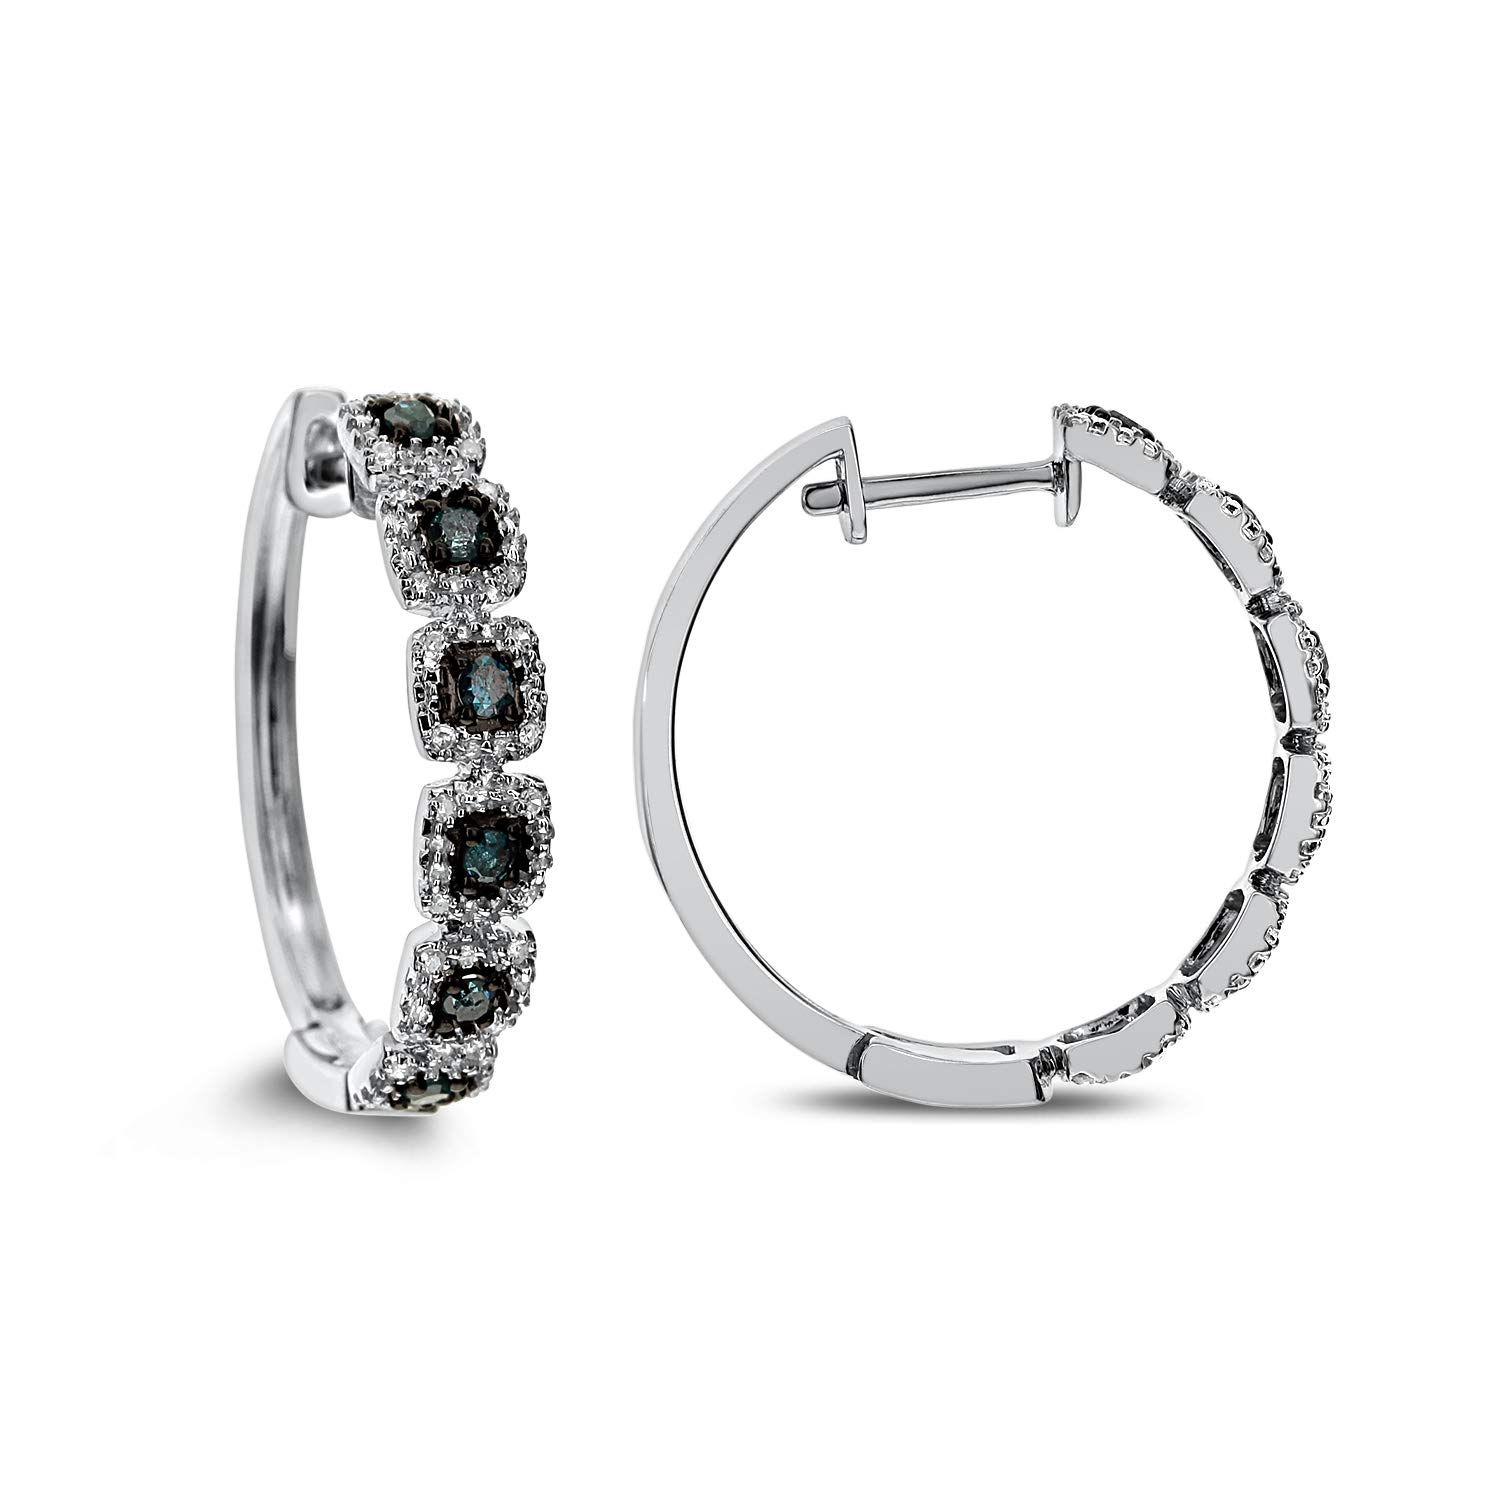 DIAMOND COUTURE 10K White Gold 0.09 Carat Round Cut And 0.22 Carat Blue Diamond Hoop Earring for Women and Girls, I-J Color, I1-I2 Clarity